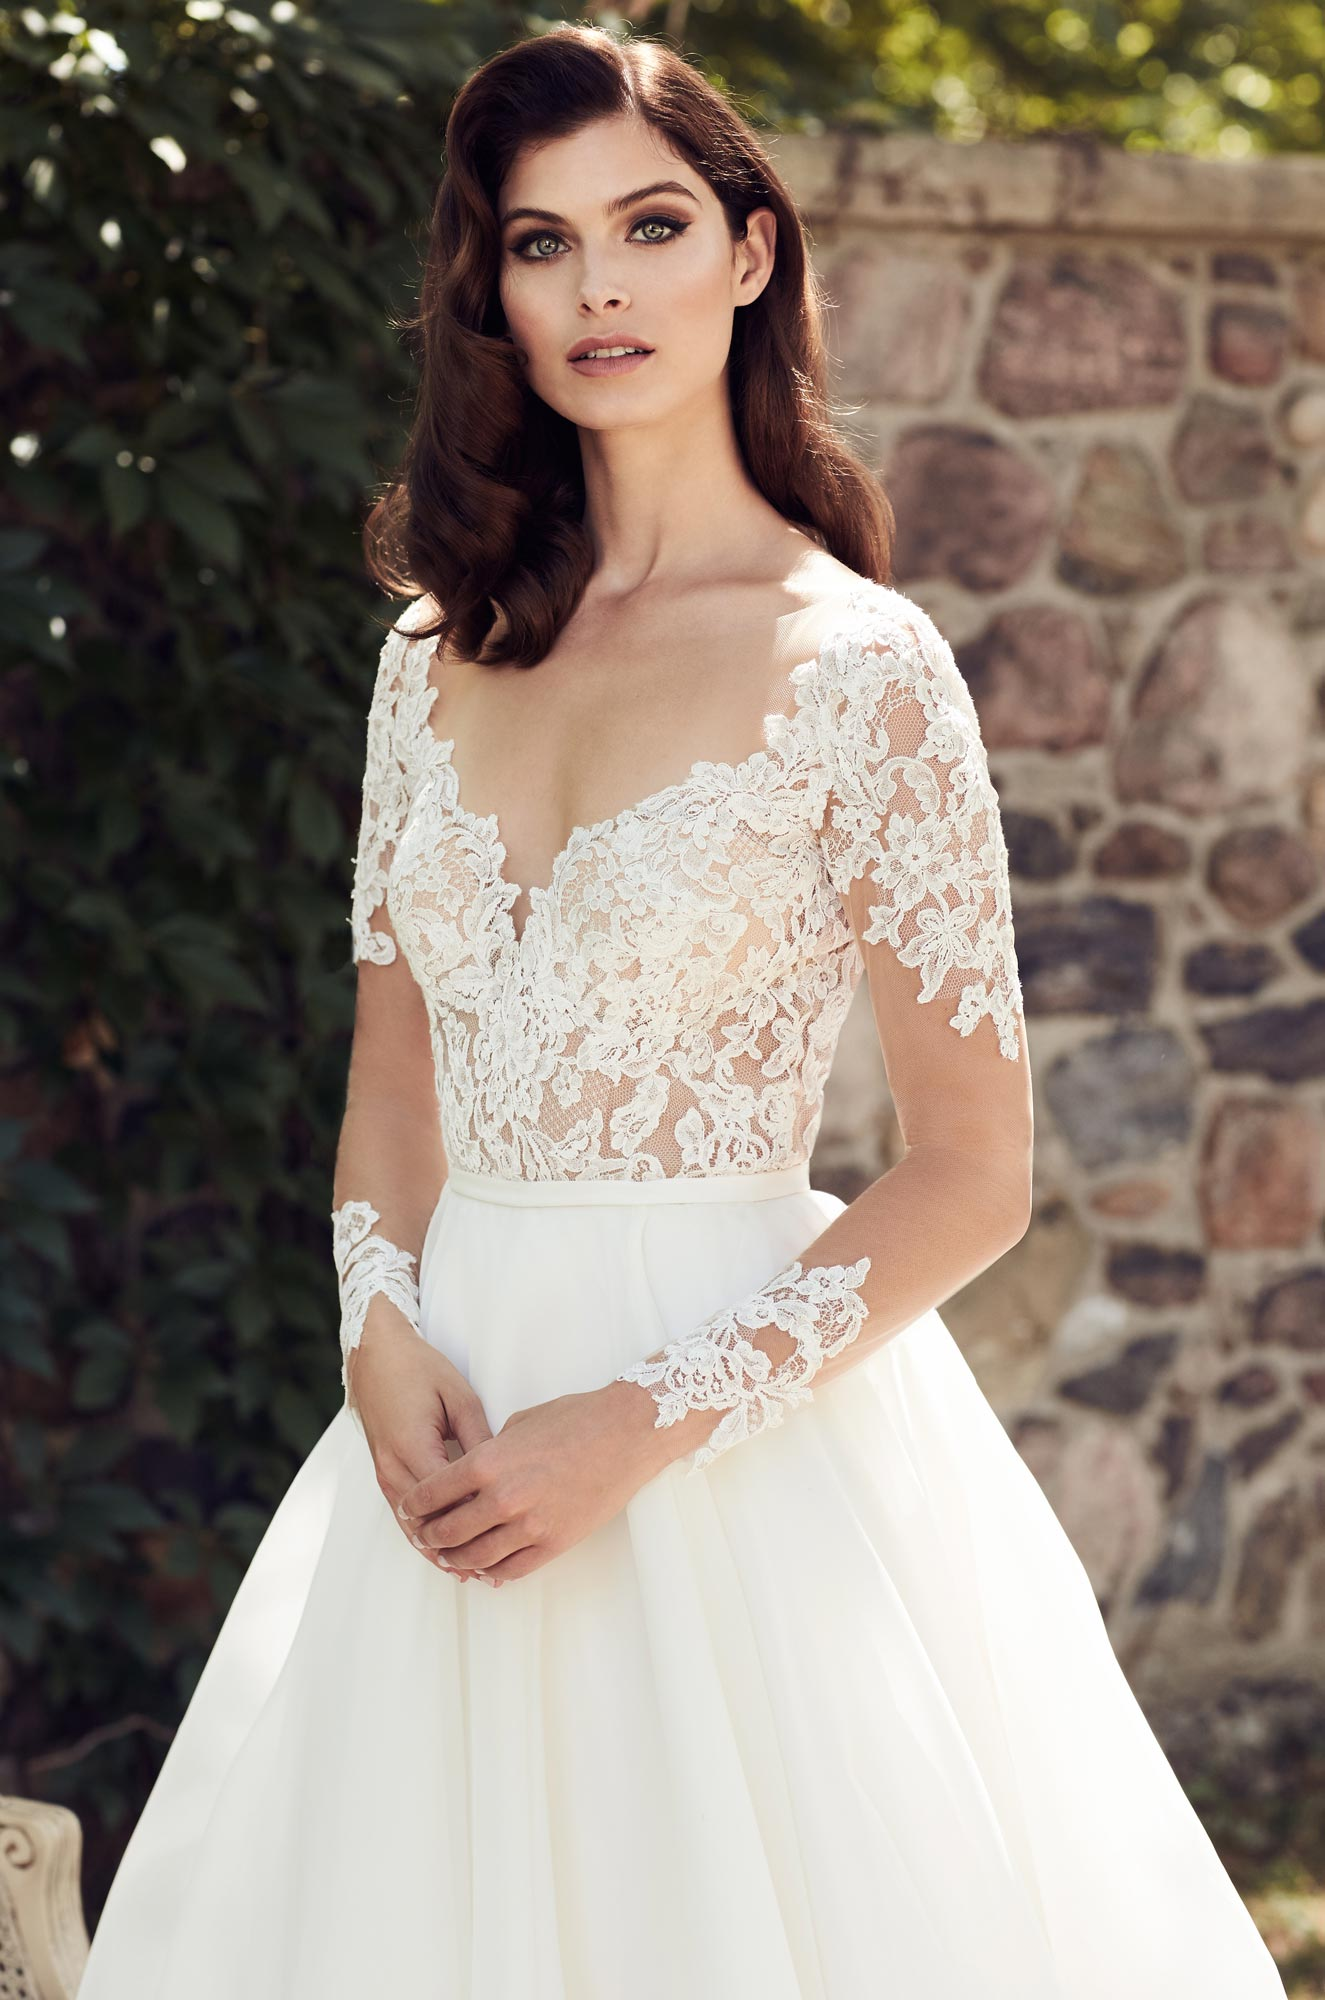 Illusion Lace Sleeve Wedding Dress - Style #4744 | Paloma Blanca